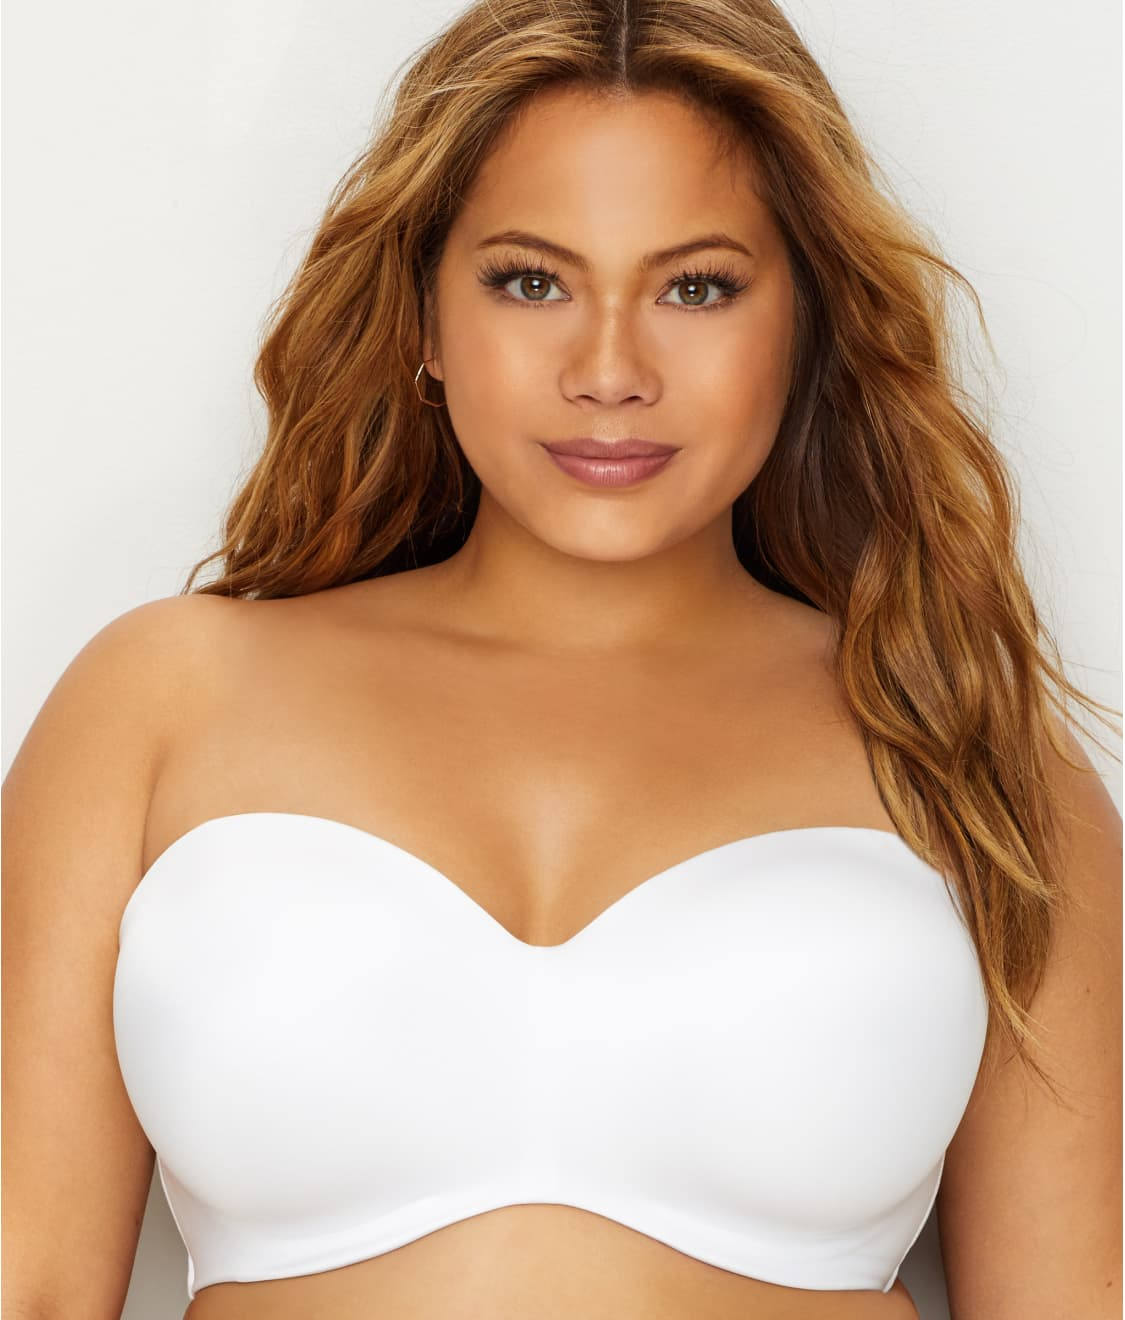 59cd6c14396 Curvy Couture Smooth Multi-Way Strapless Bra | Bare Necessities (1290)